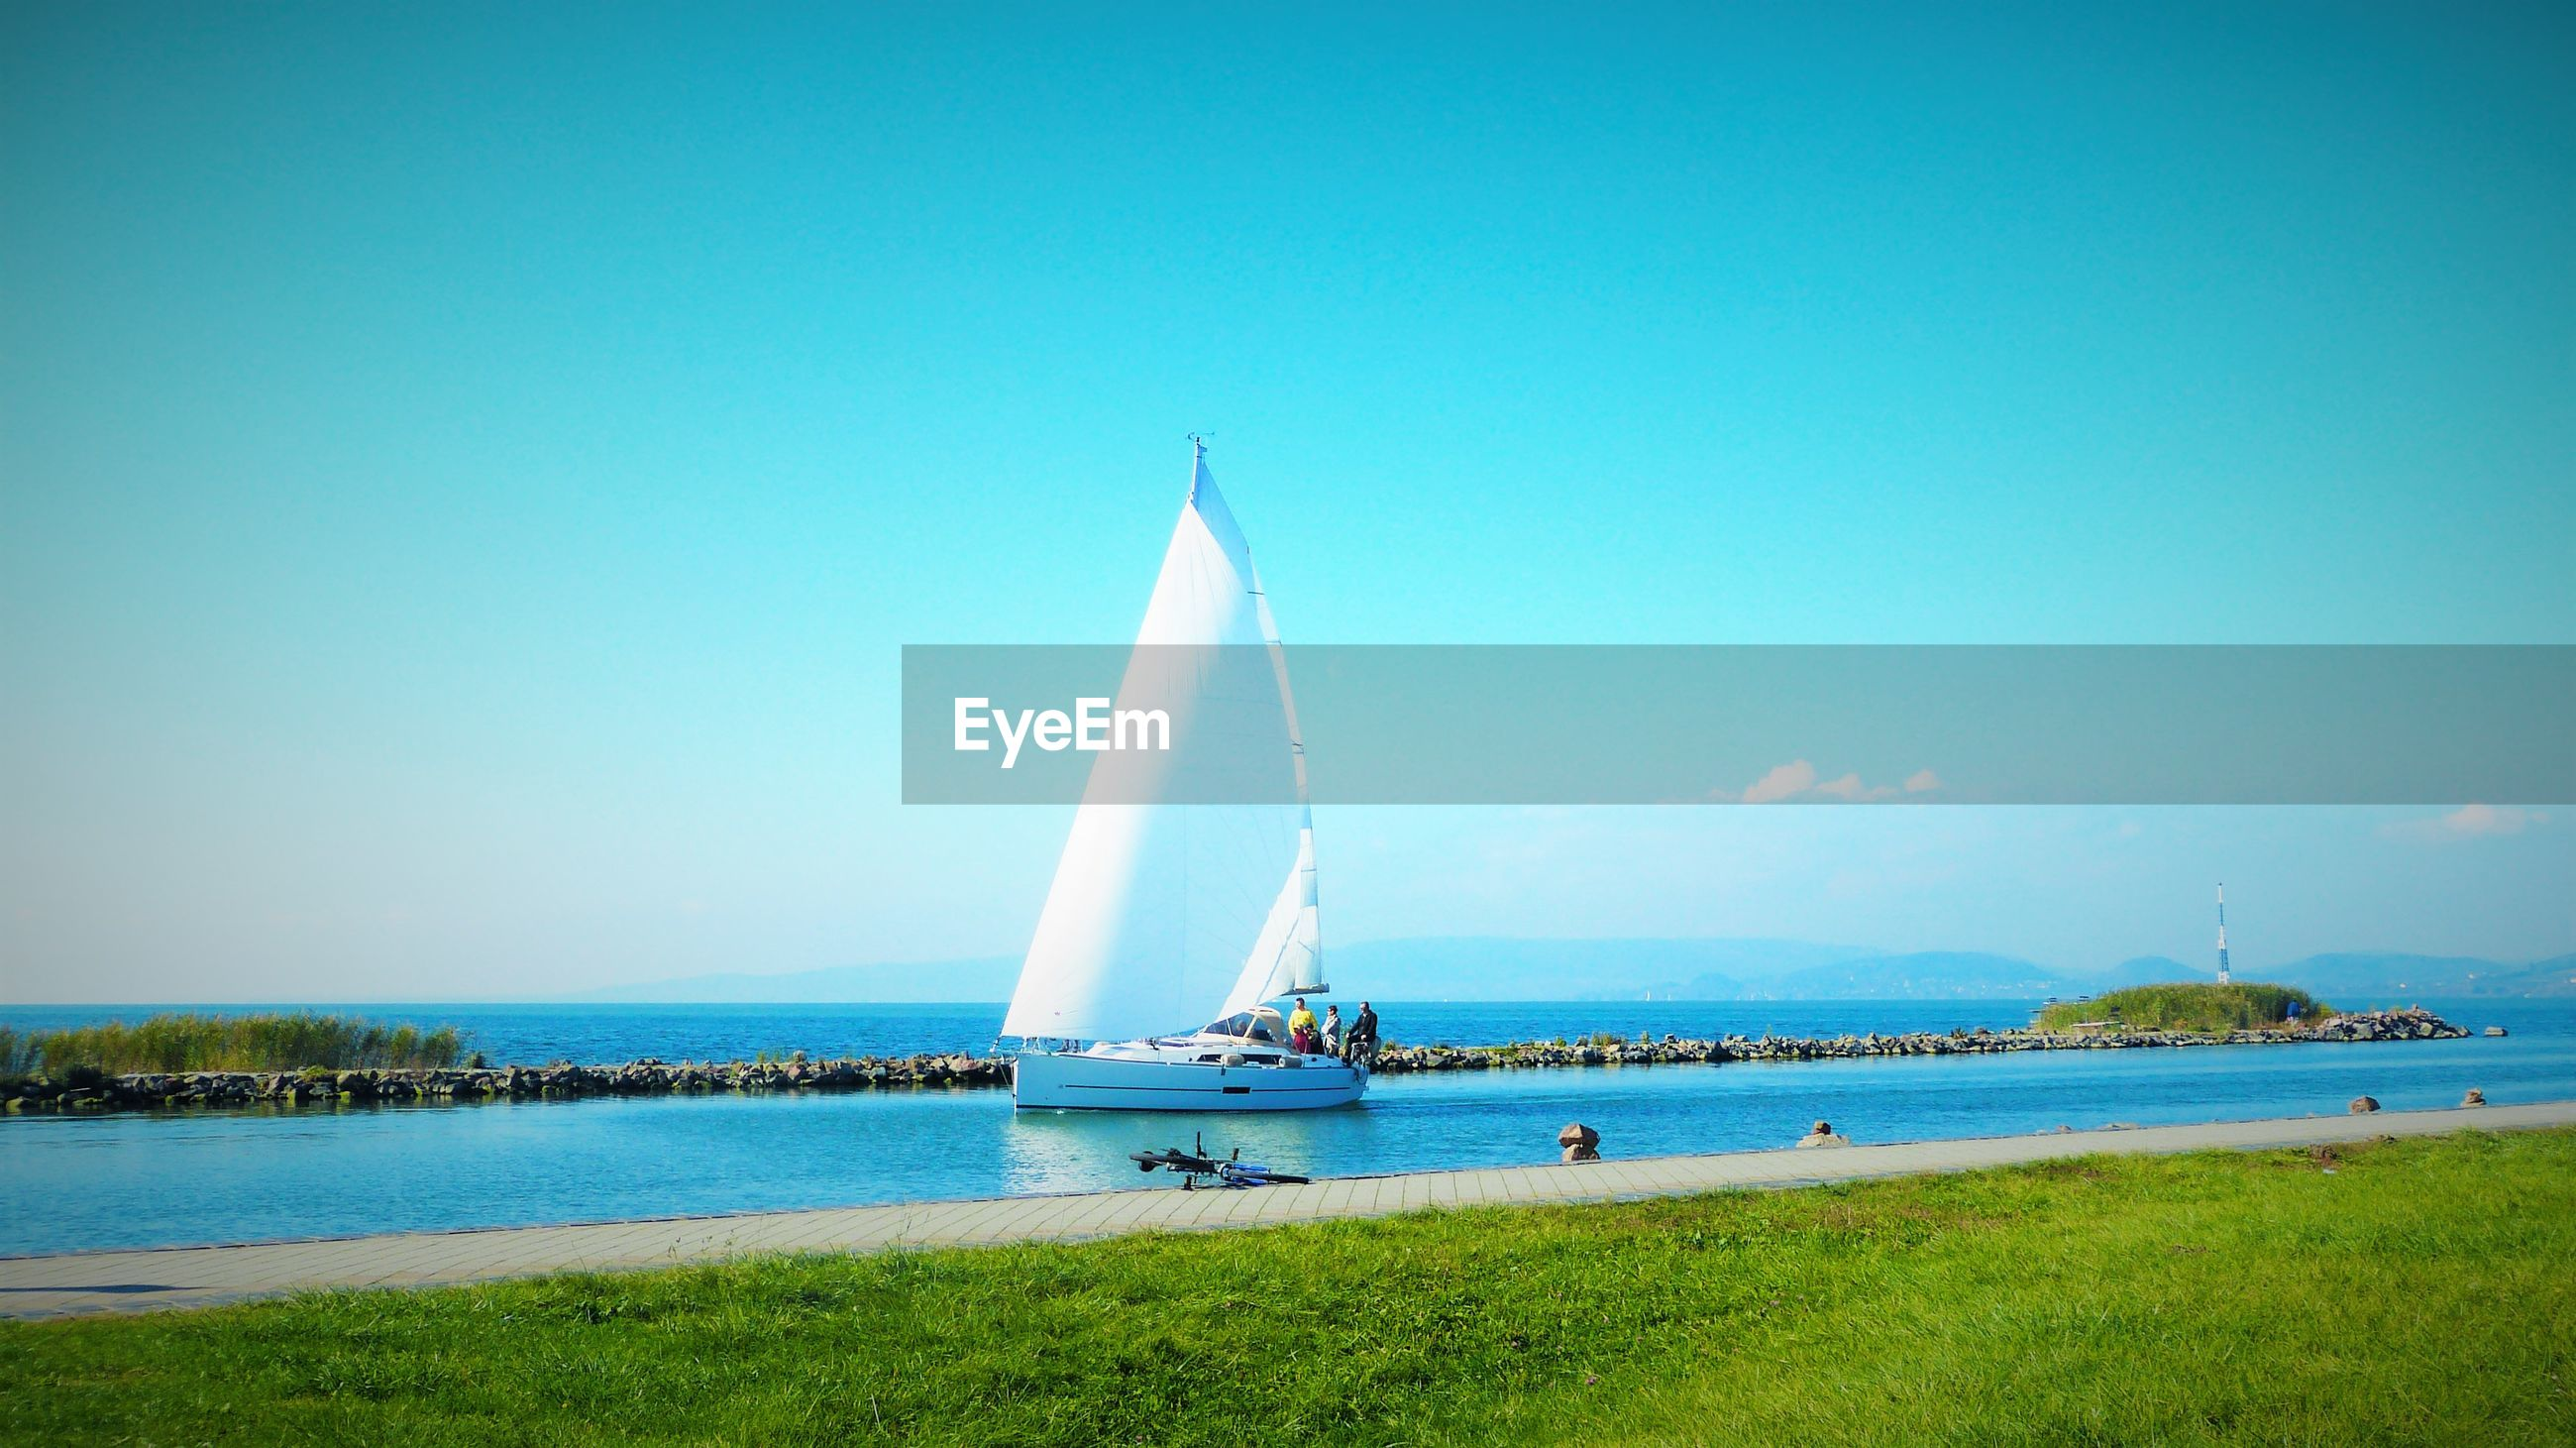 sky, clear sky, blue, transportation, sea, water, nautical vessel, nature, outdoors, day, no people, horizon over water, beauty in nature, sailboat, yachting